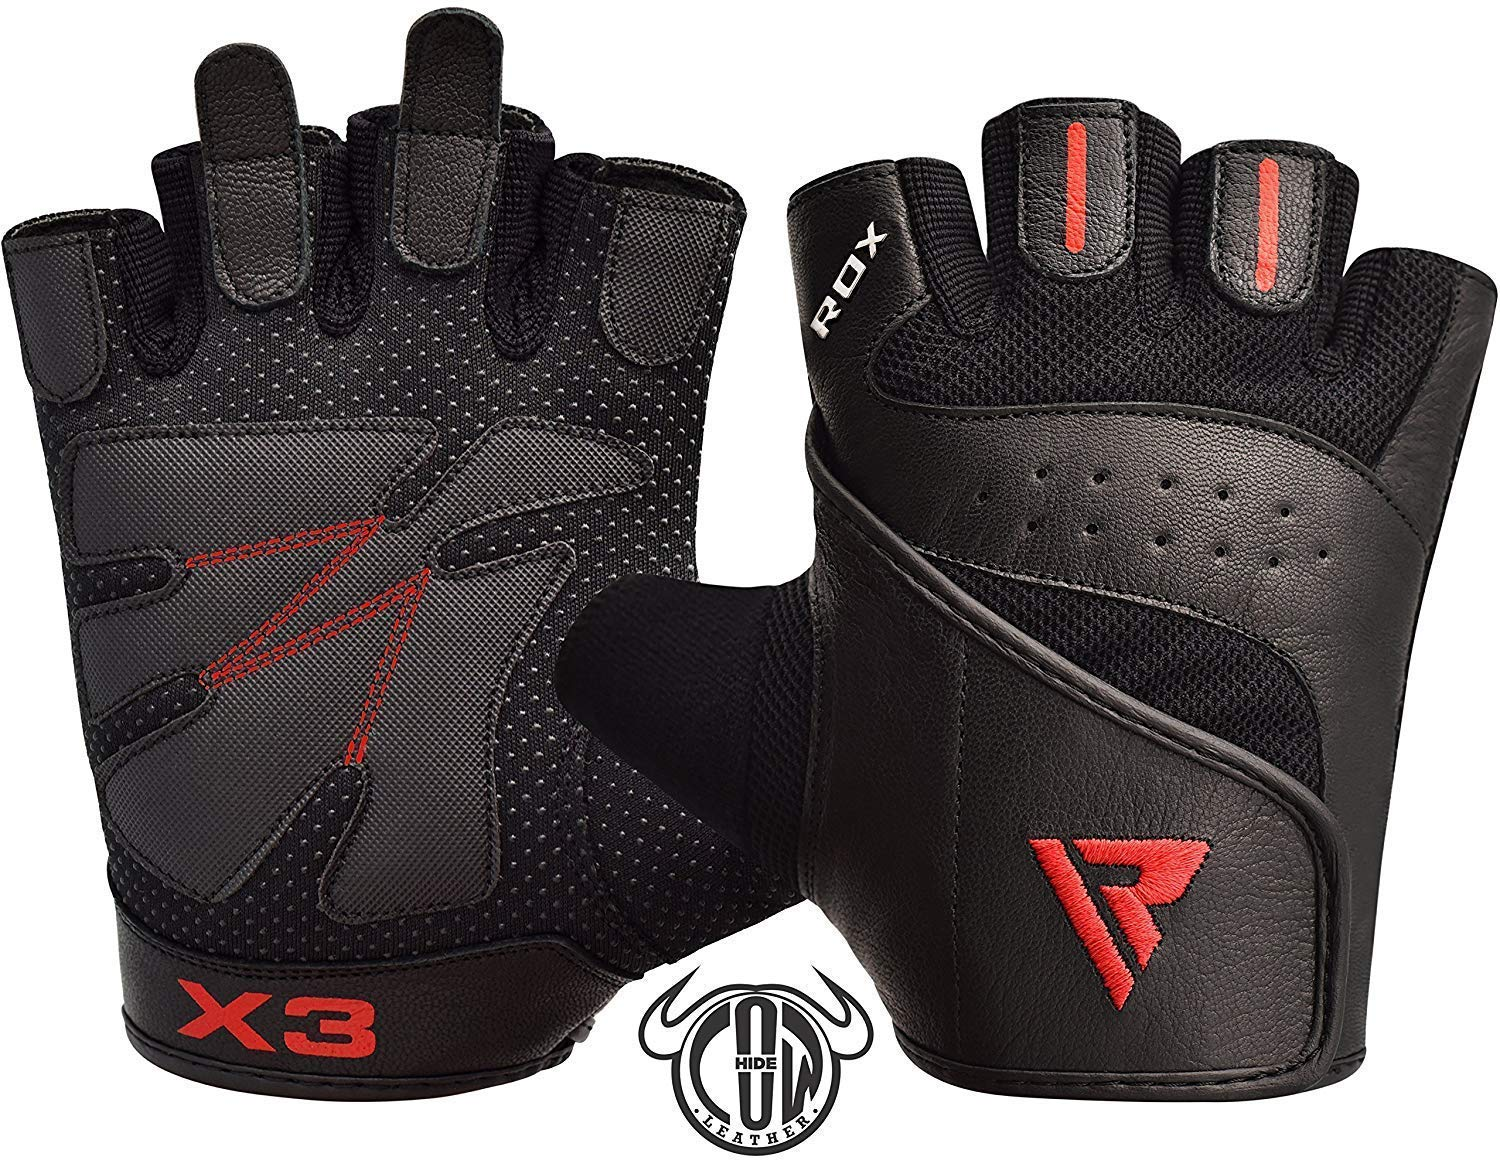 Breathable with Padded Anti Slip Palm Protection RDX Weight Lifting Gloves for Gym Workout Weightlifting Cycling /& Exercise Great for Fitness powerlifting Strength Training Bodybuilding